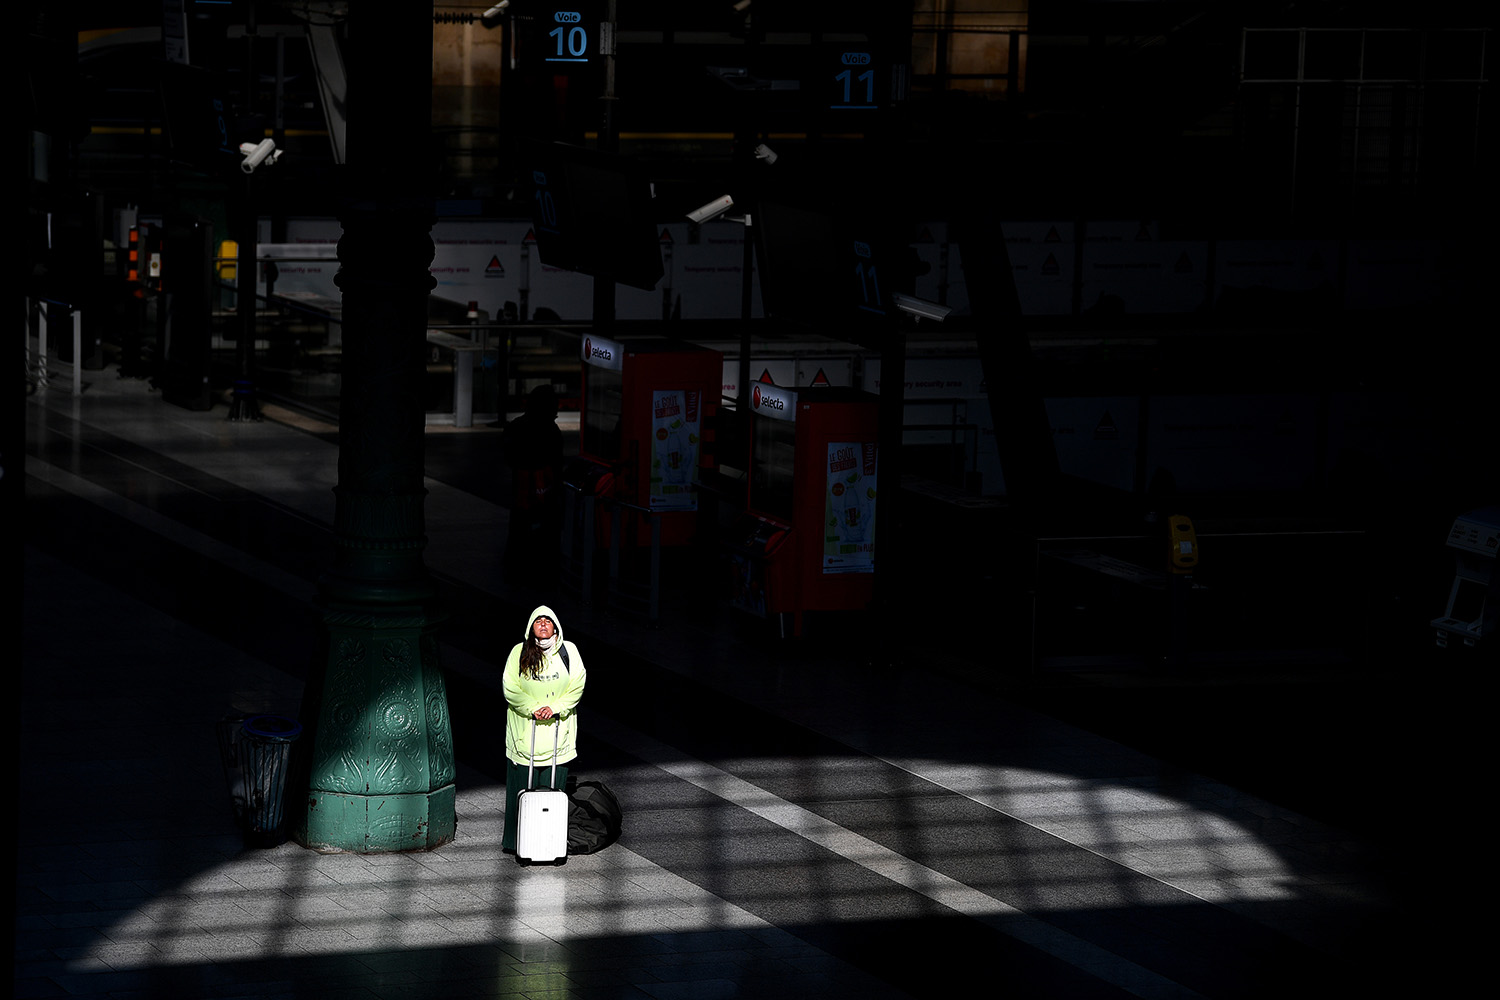 A woman waits with her suitcase at the Gare du Nord train station in Paris on April 1. FRANCK FIFE/AFP via Getty Images